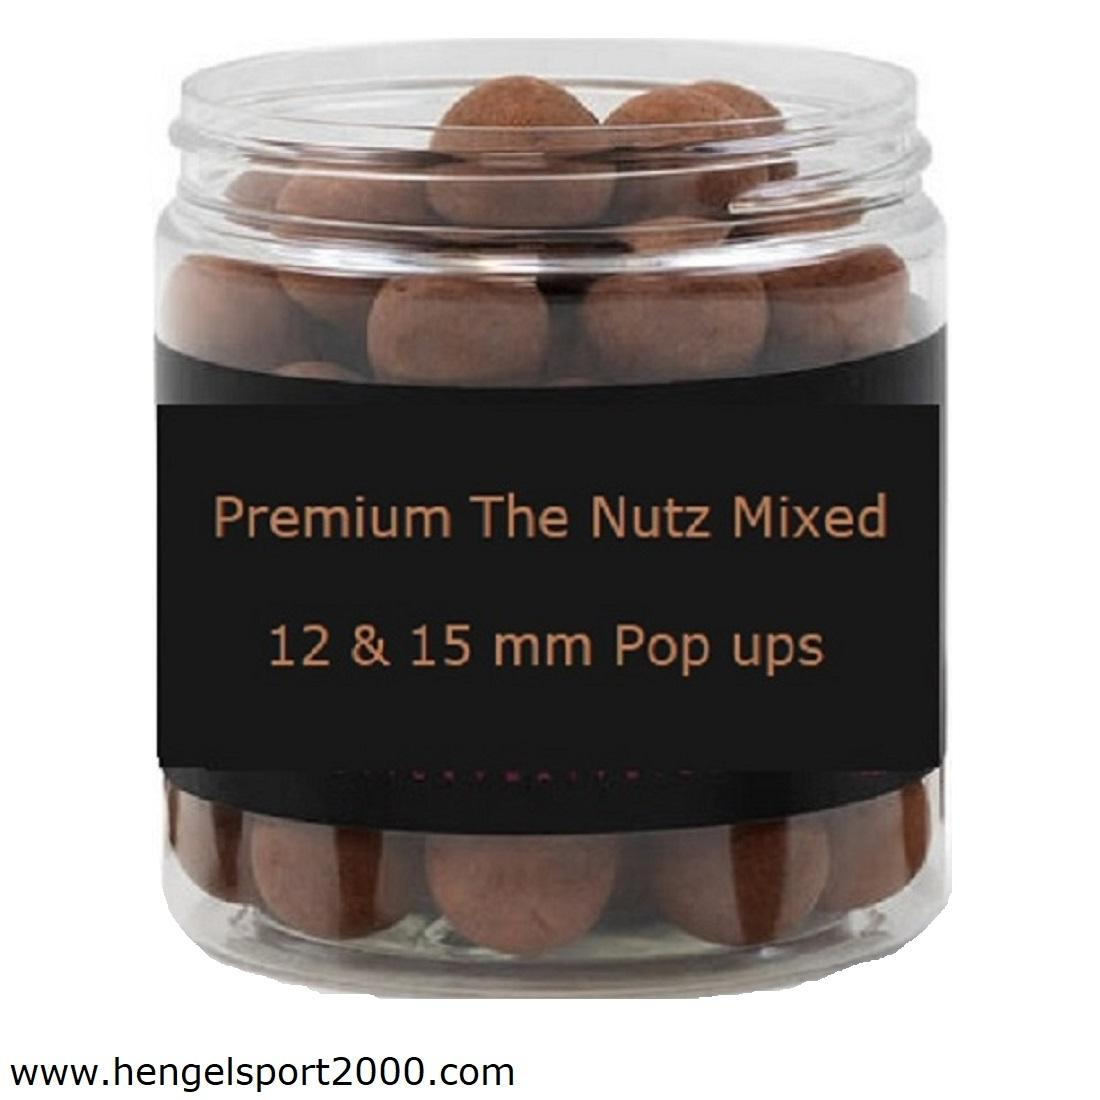 Premium The Nutz Mixed Pop ups